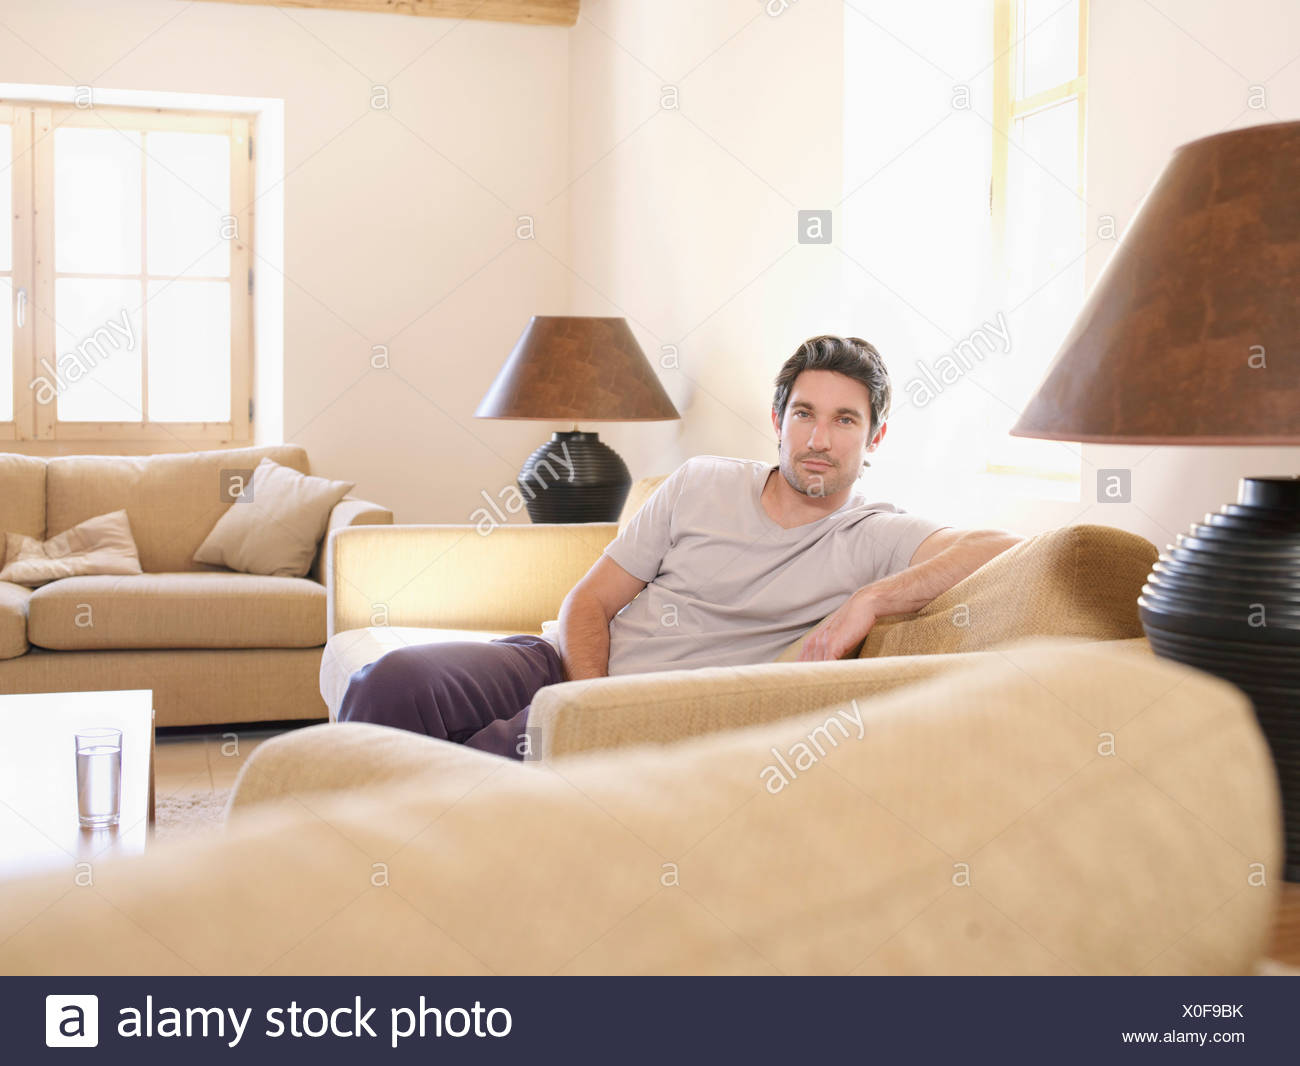 Man relaxing on sofa in living room - Stock Image